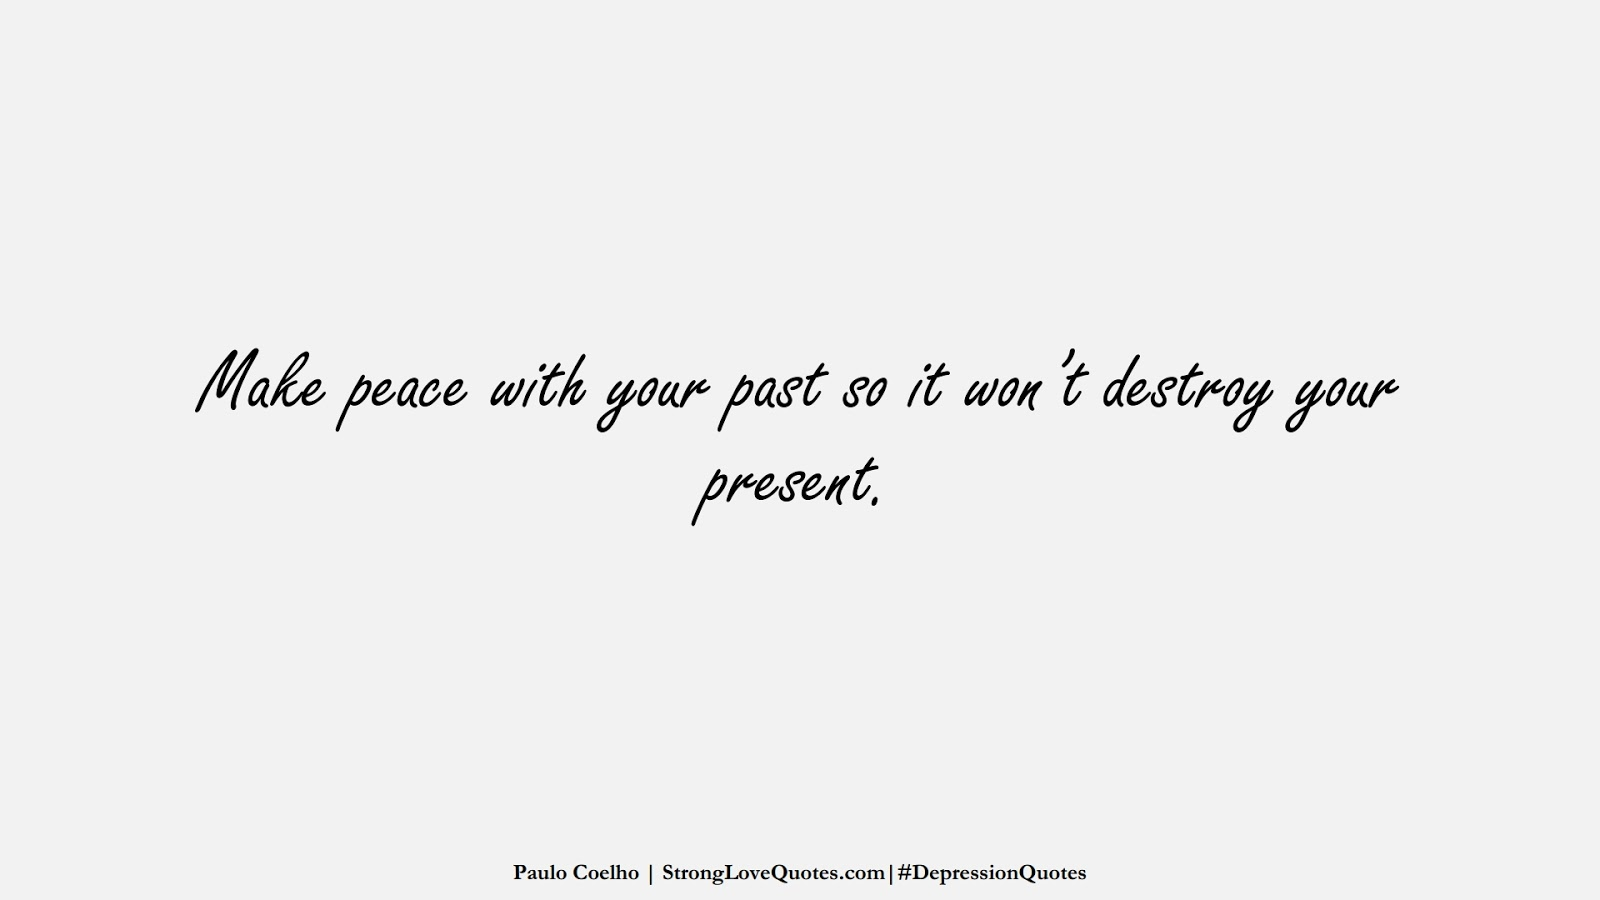 Make peace with your past so it won't destroy your present. (Paulo Coelho);  #DepressionQuotes